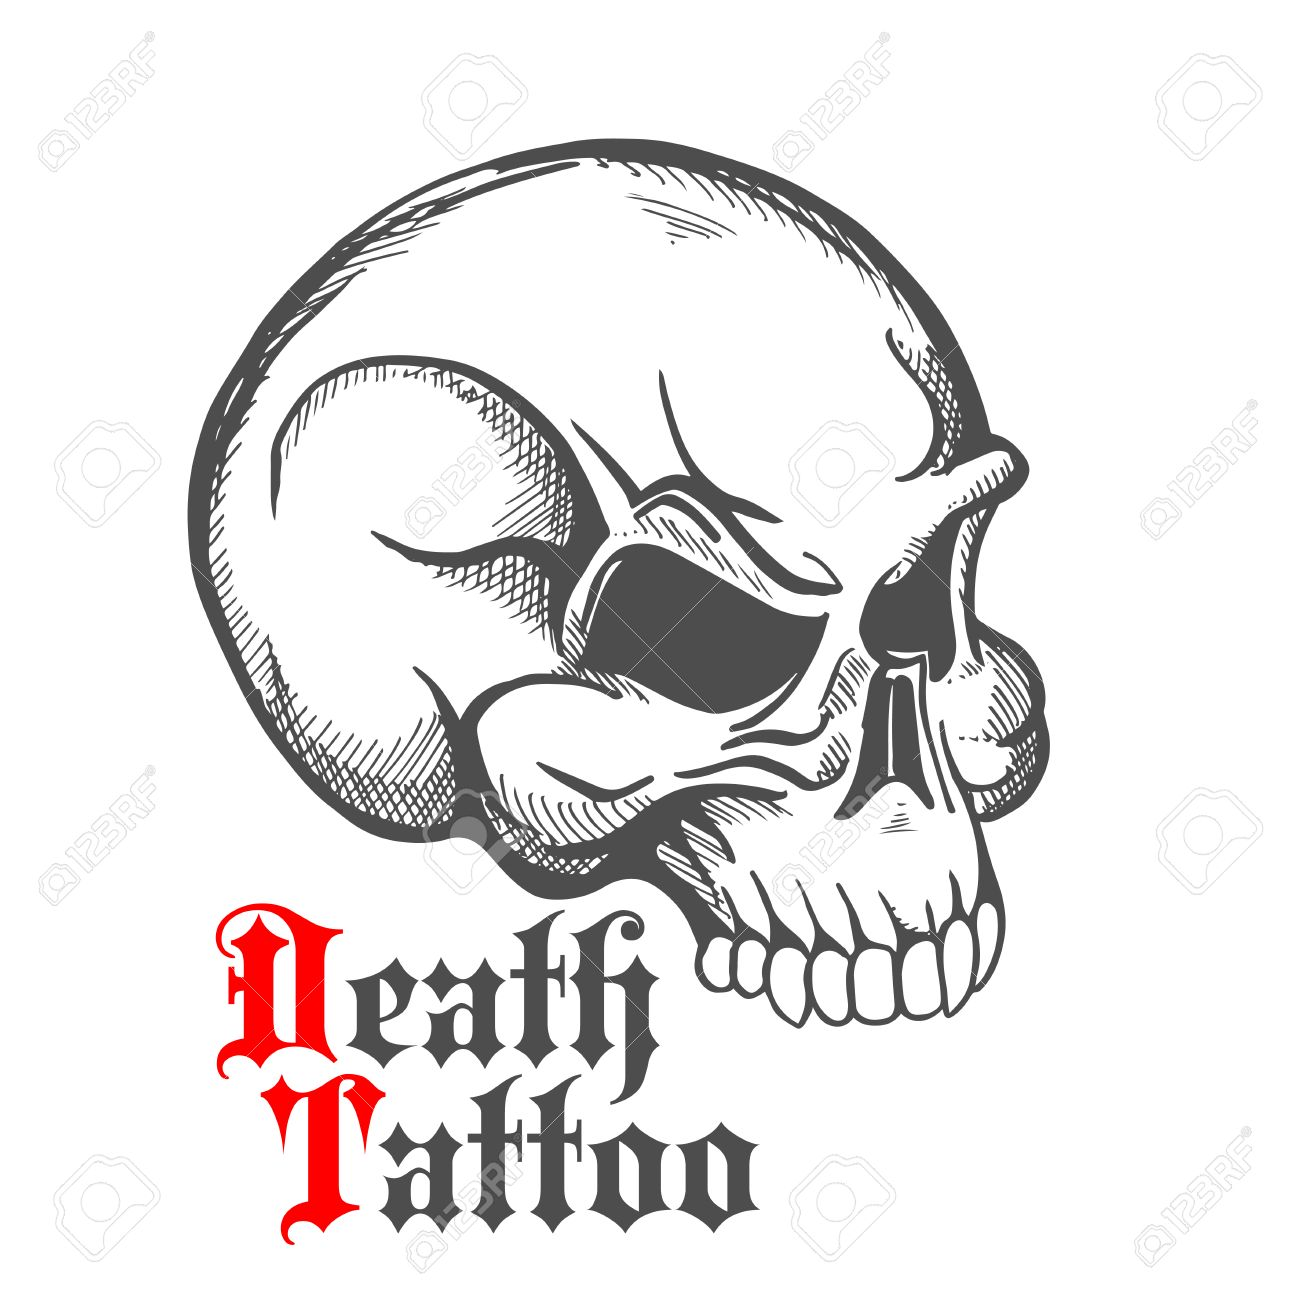 Decorative vintage sketch of human skull for tattoo or death decorative vintage sketch of human skull for tattoo or death symbol design with half turn profile buycottarizona Images